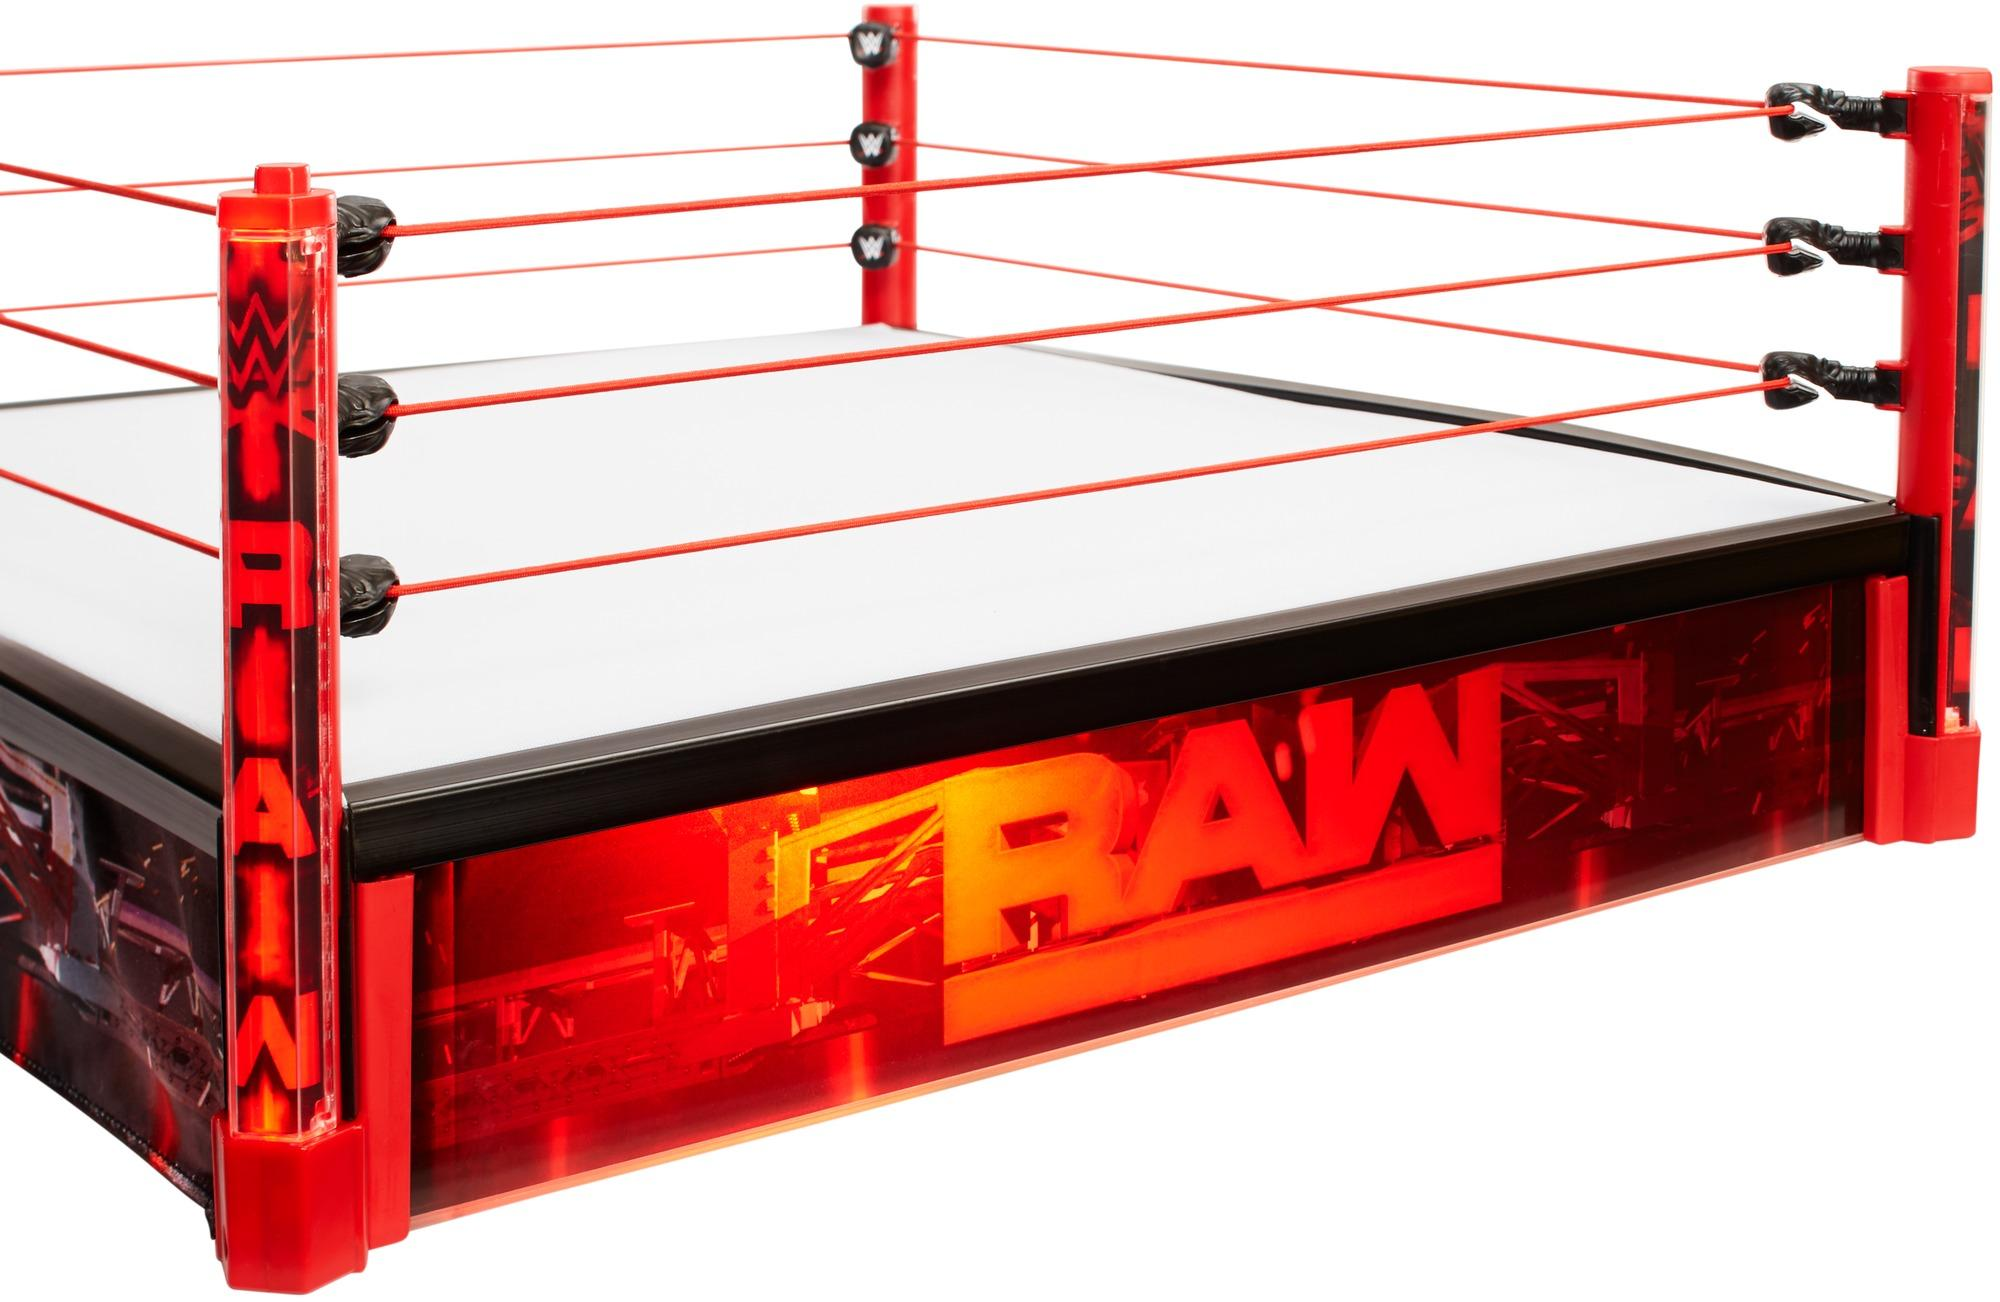 Wwe Raw Ring Accessories